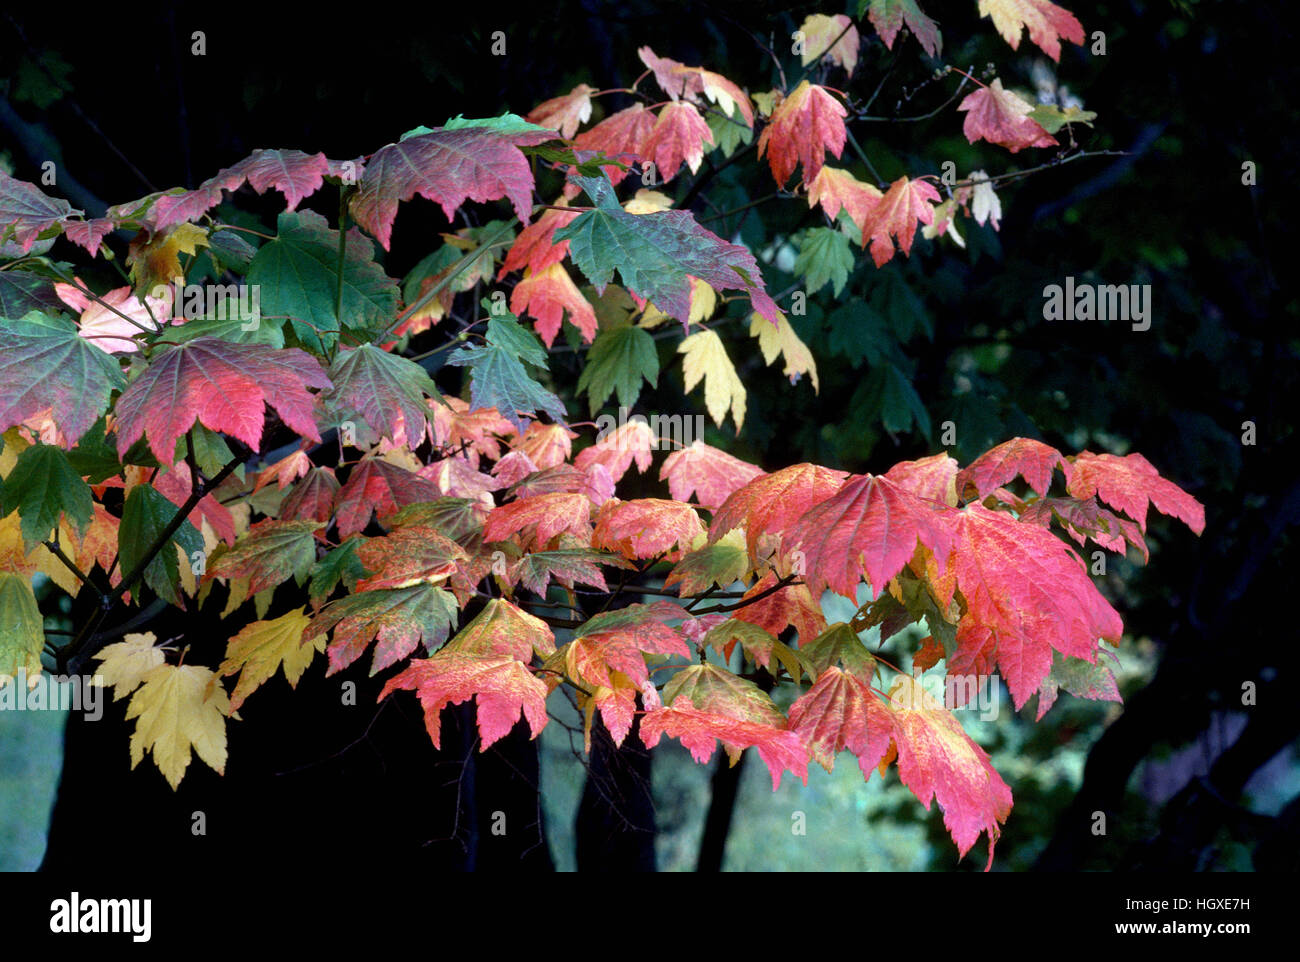 Autumn Leaves - Maple Leaves in Fall Colours / Colors - Stock Image